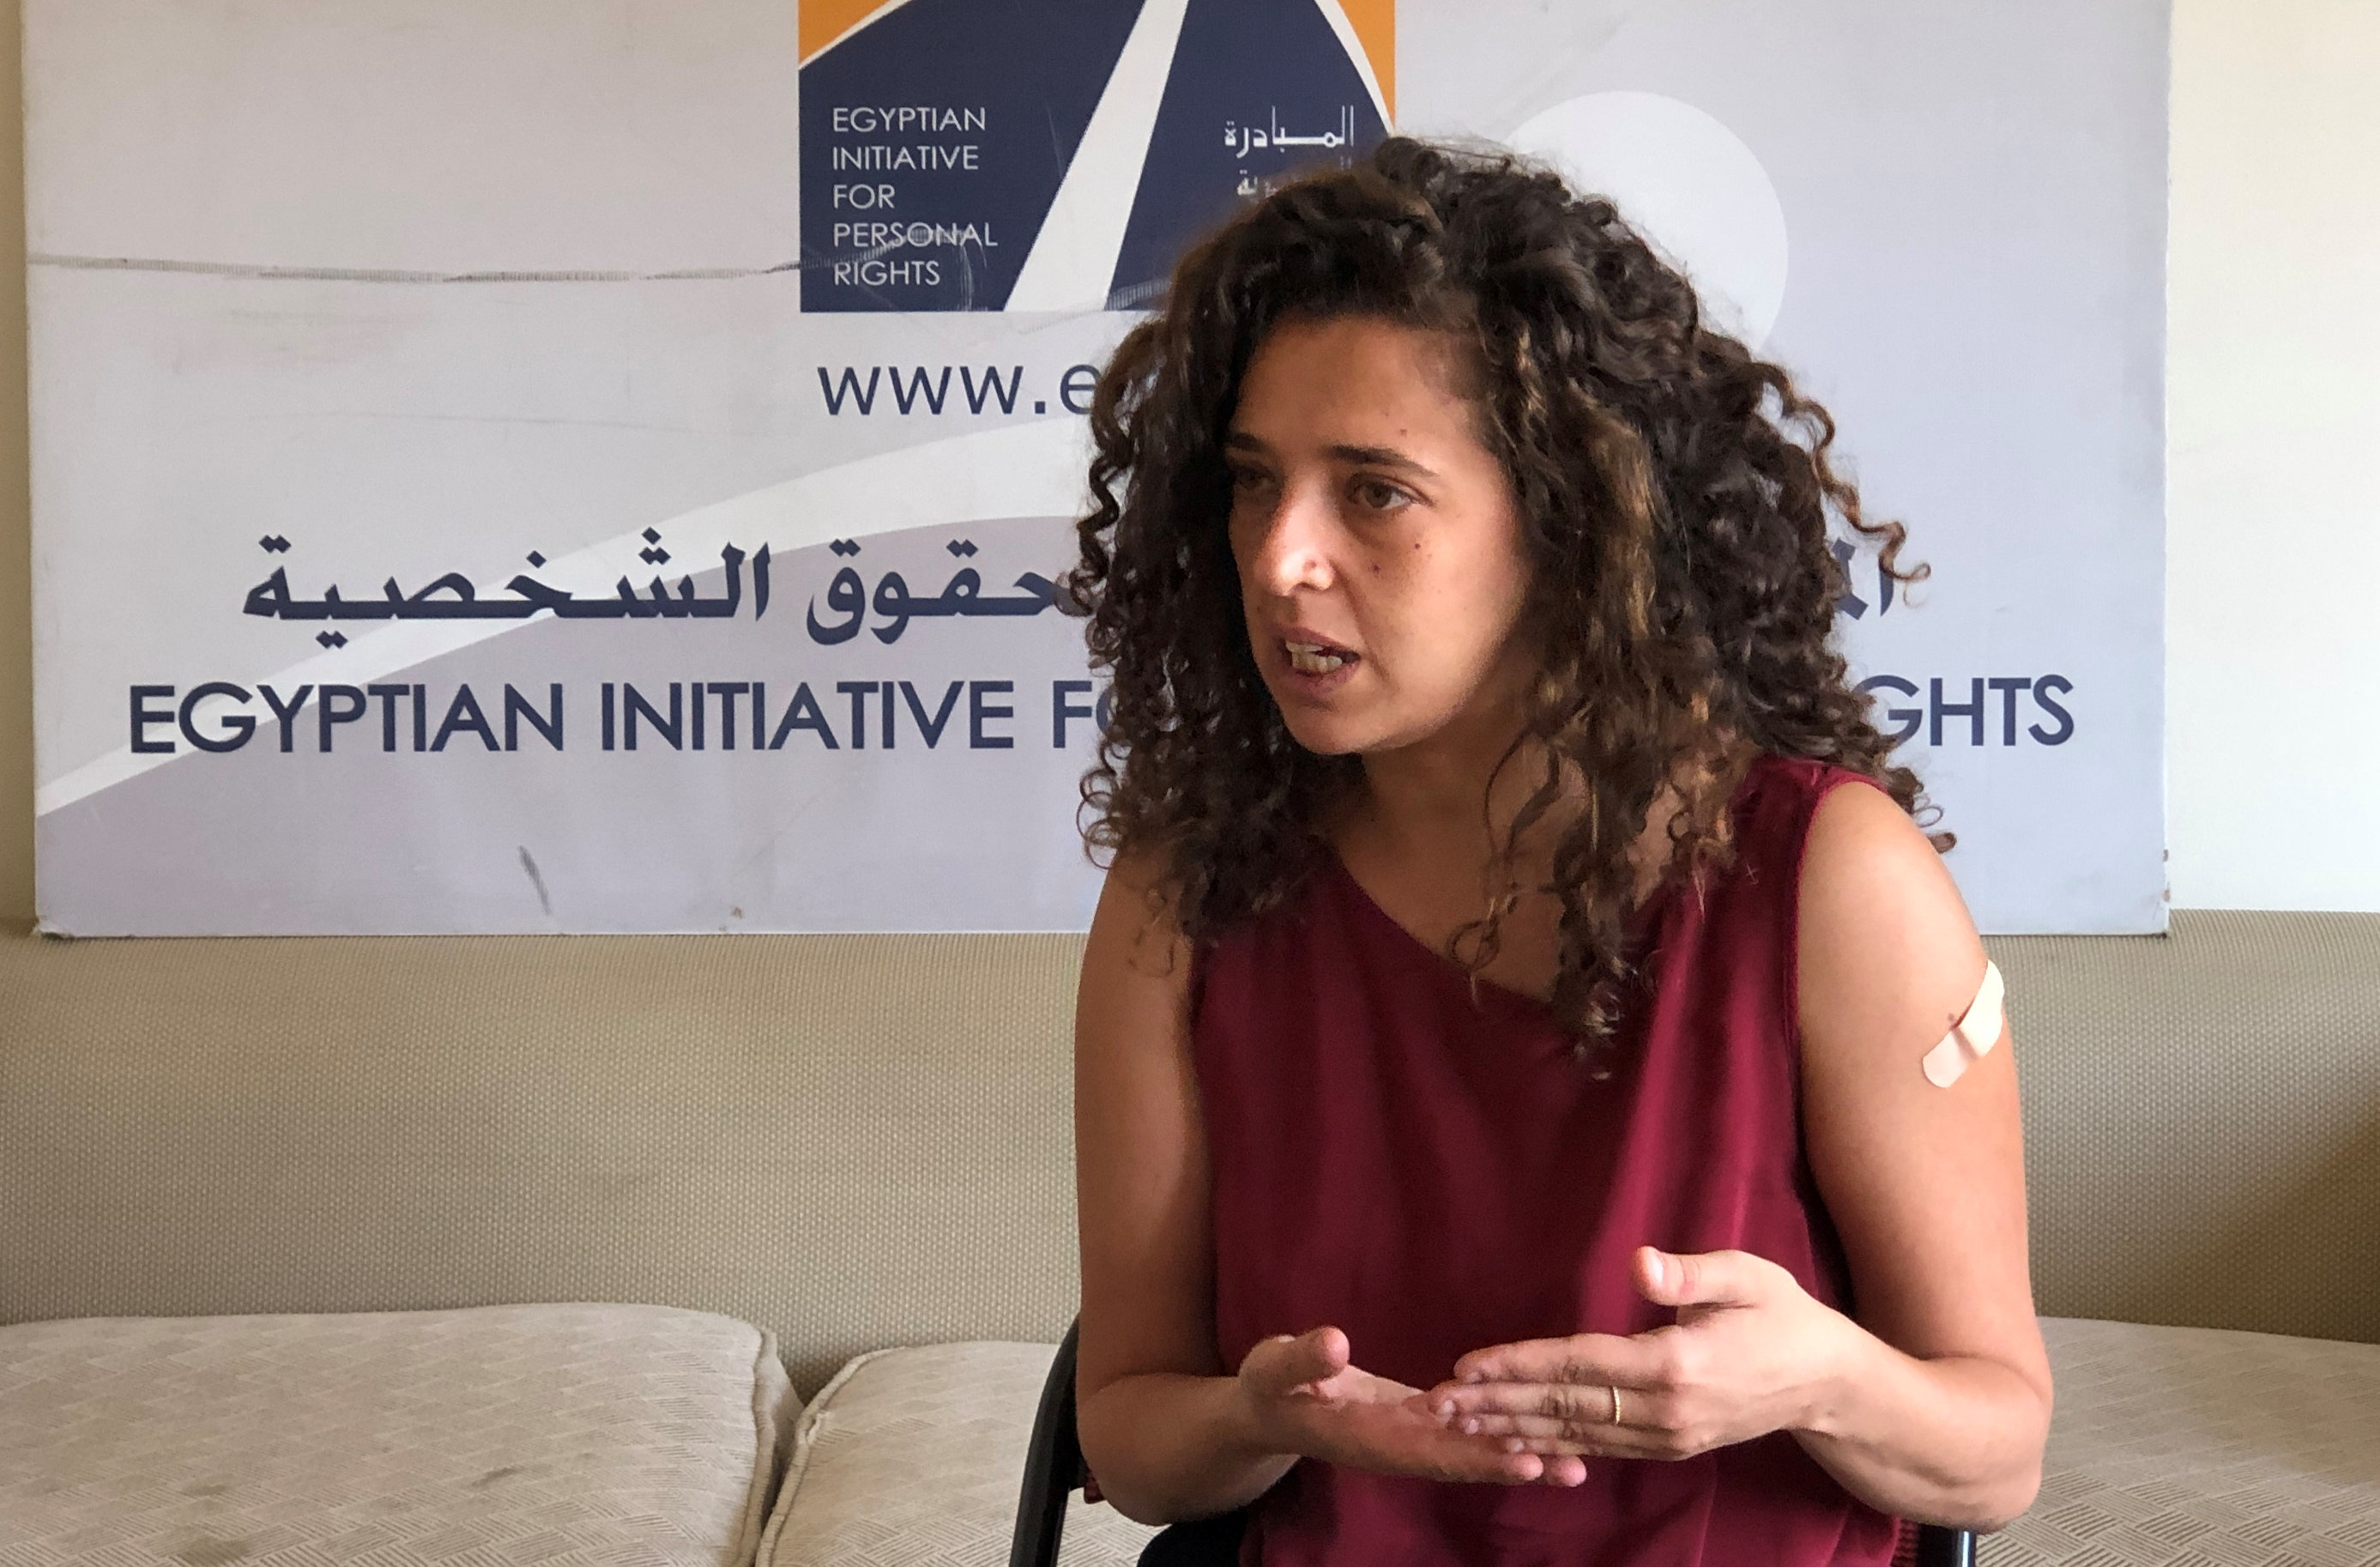 Lobna Darwish, gender and women rights officer at Egyptian Initiative for Personal Rights, speaks during an interview with Reuters in Cairo, Egypt, June 27, 2021. REUTERS/Staff